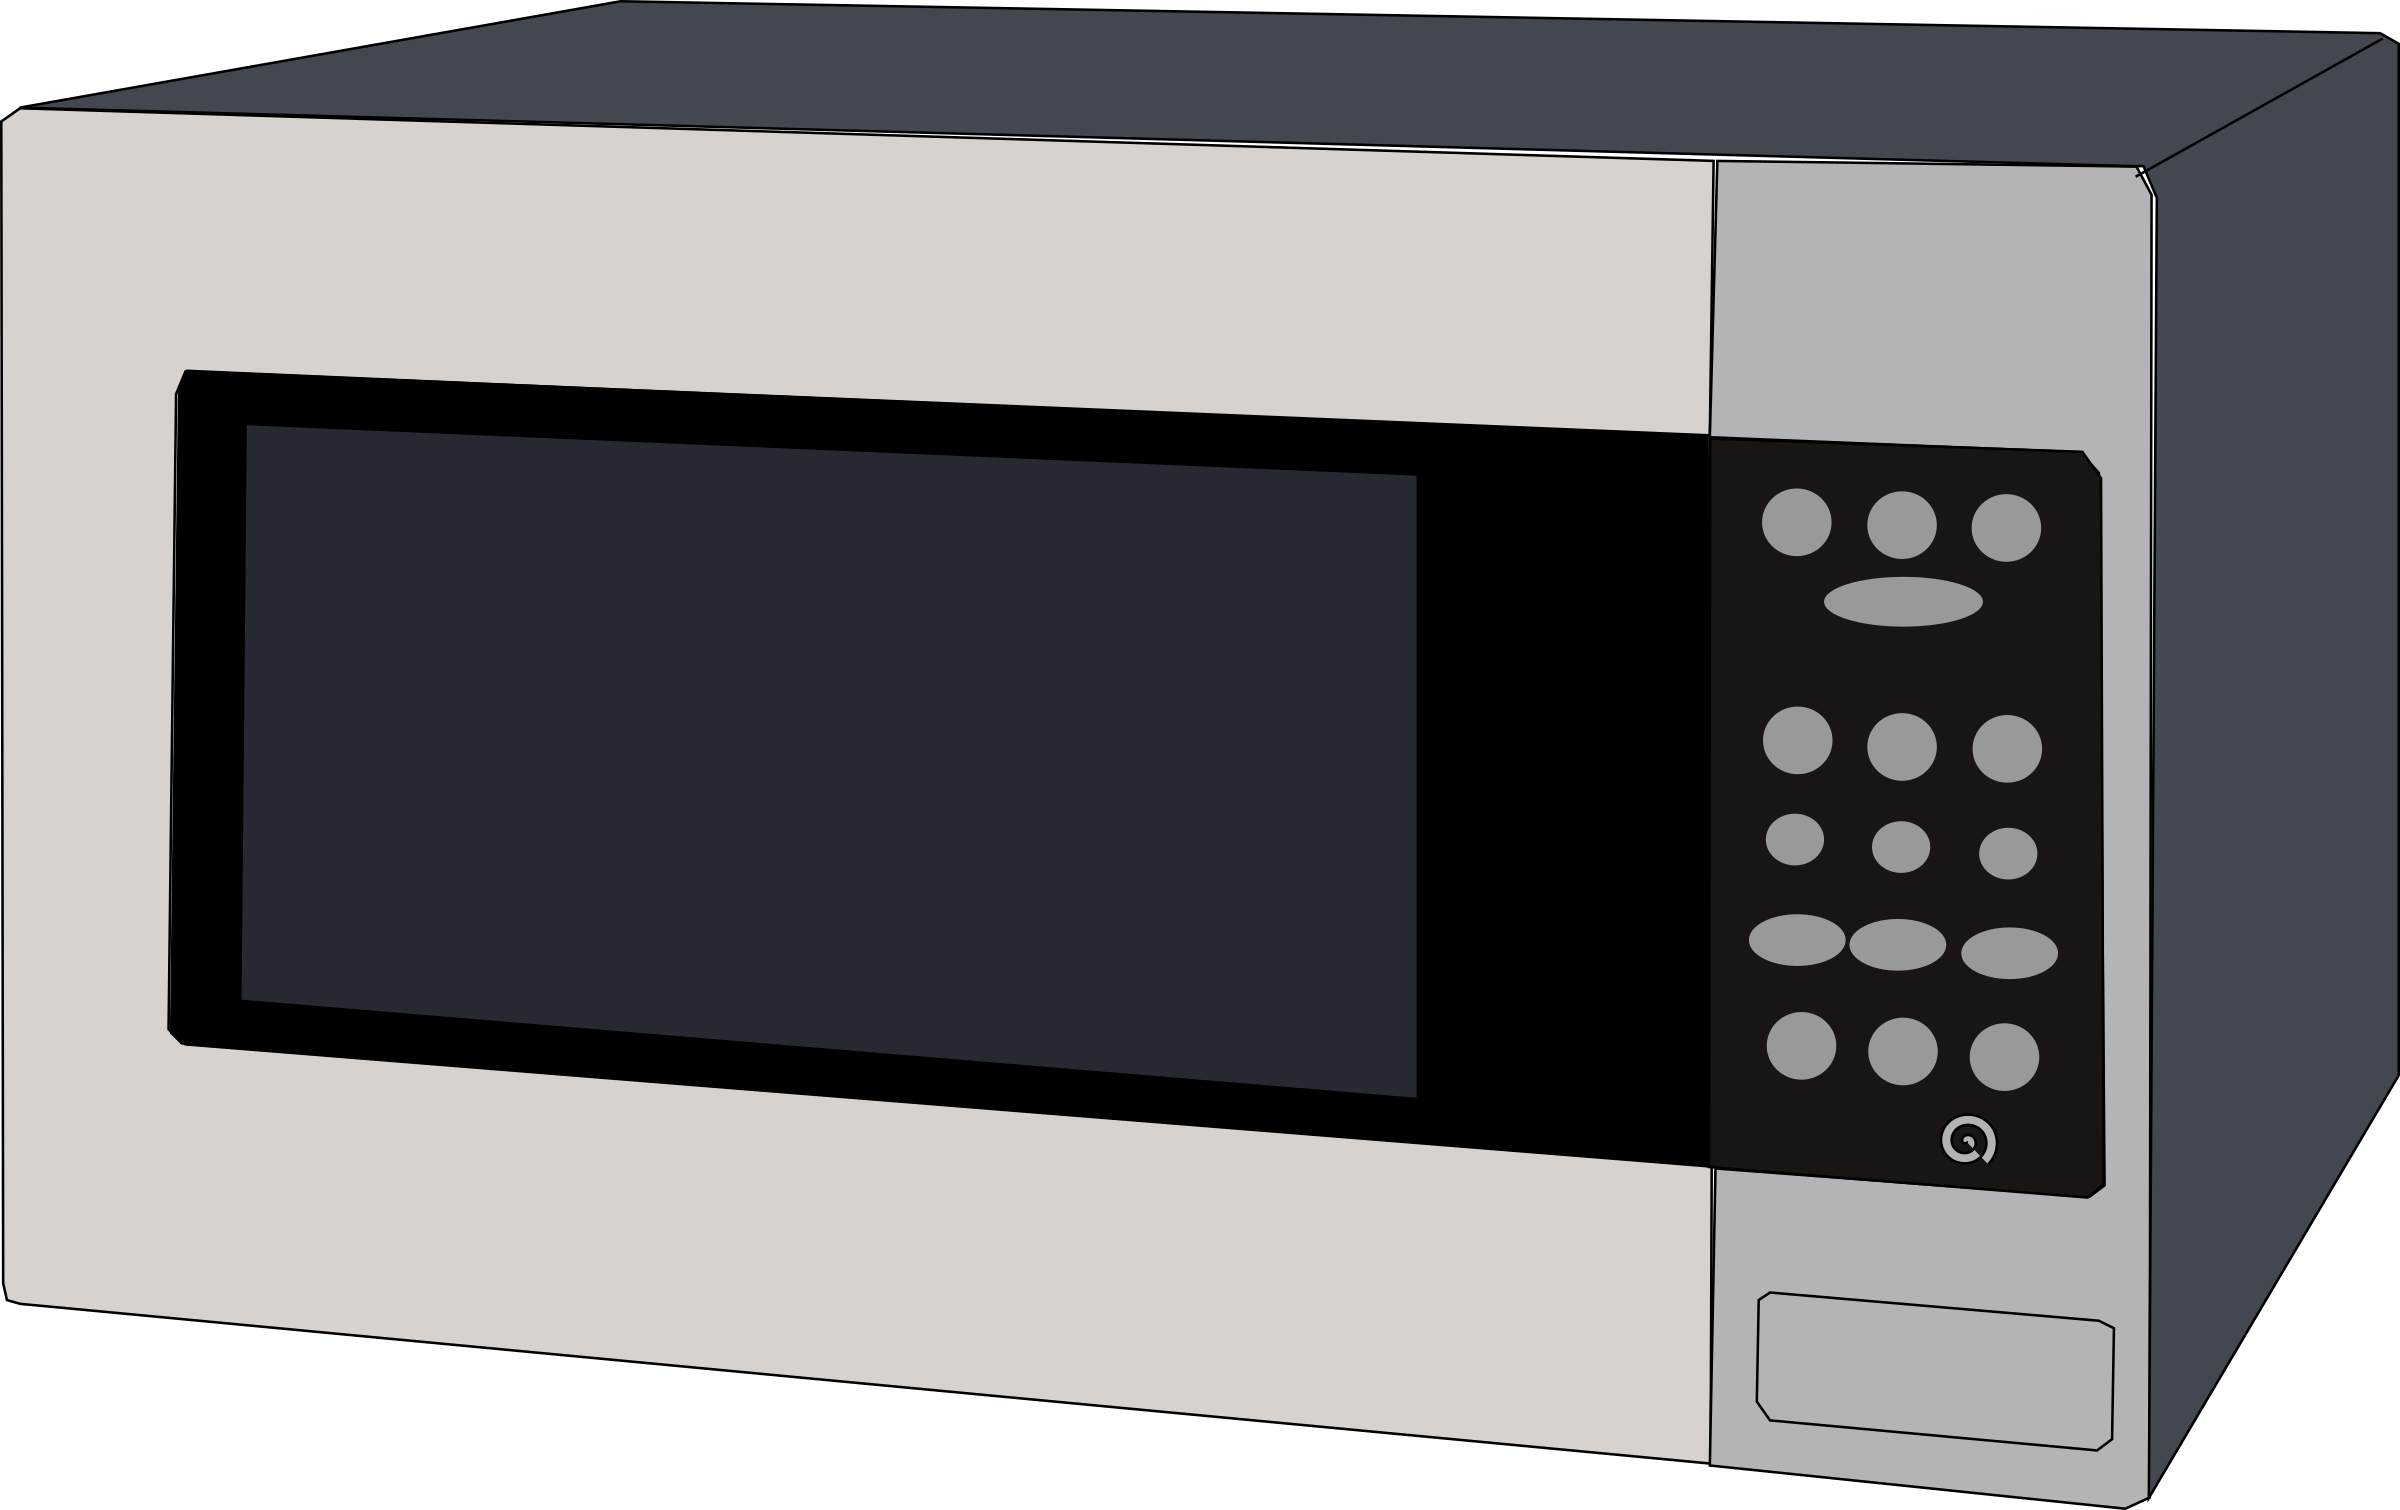 Oven. Microwave clipart animated